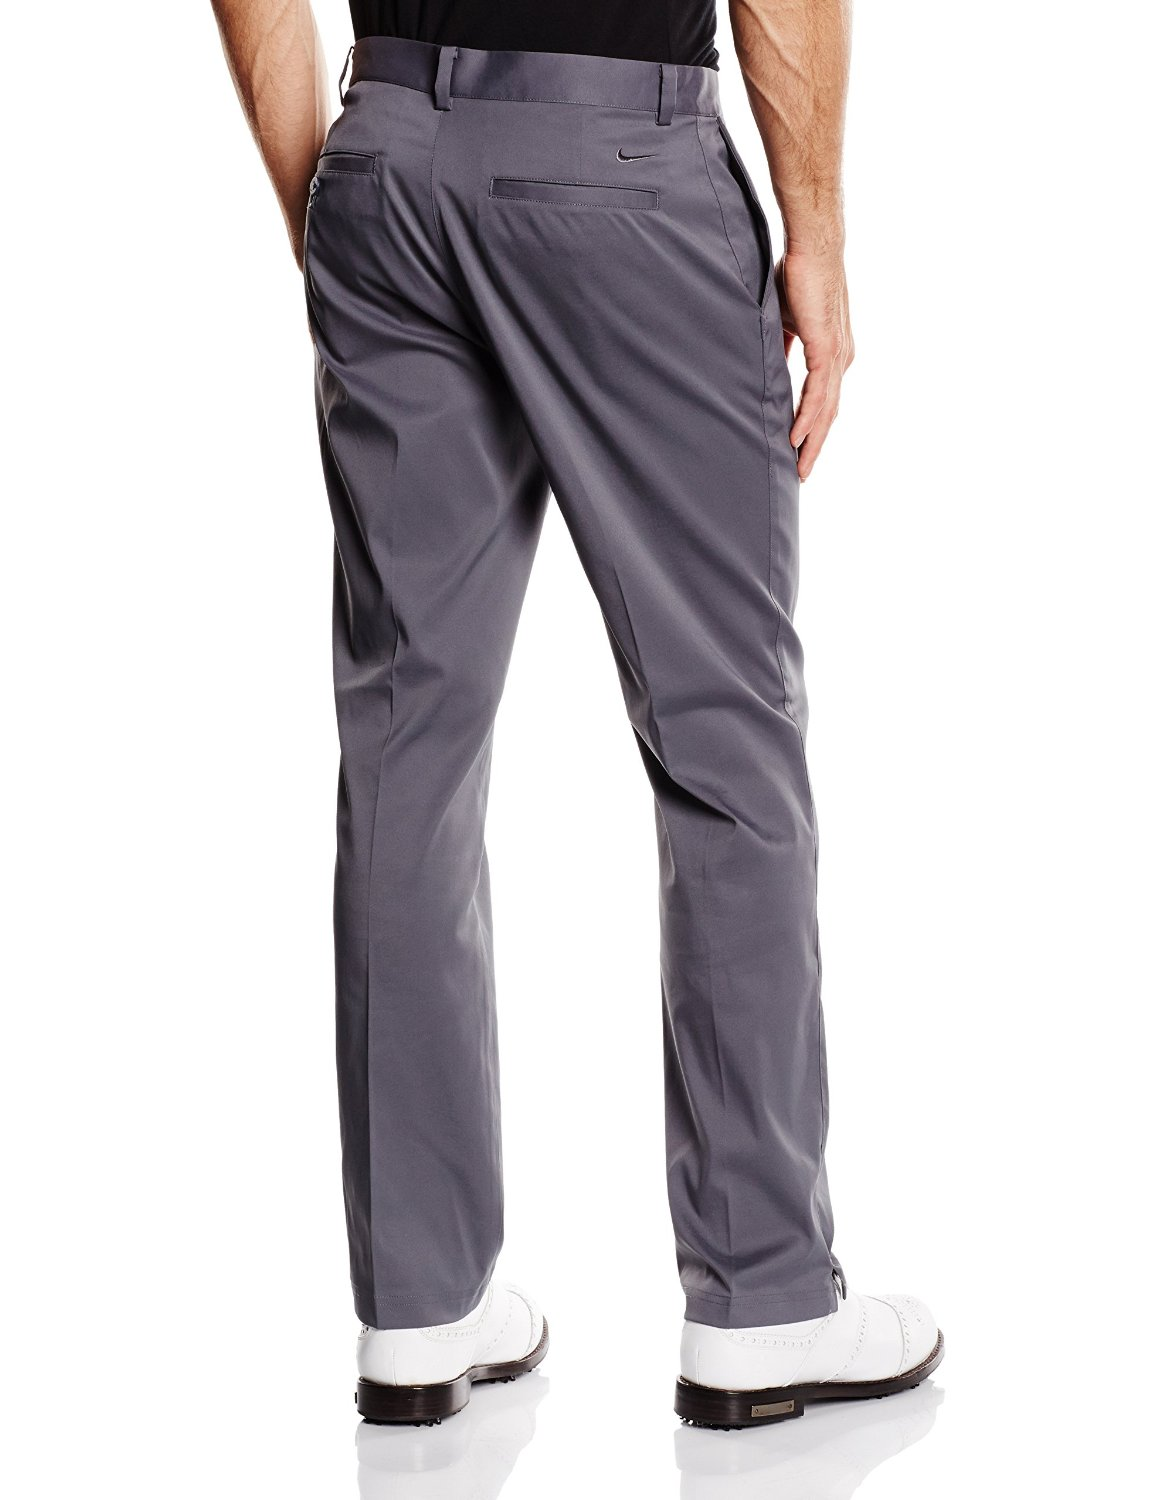 What are the Best Golf Pants?